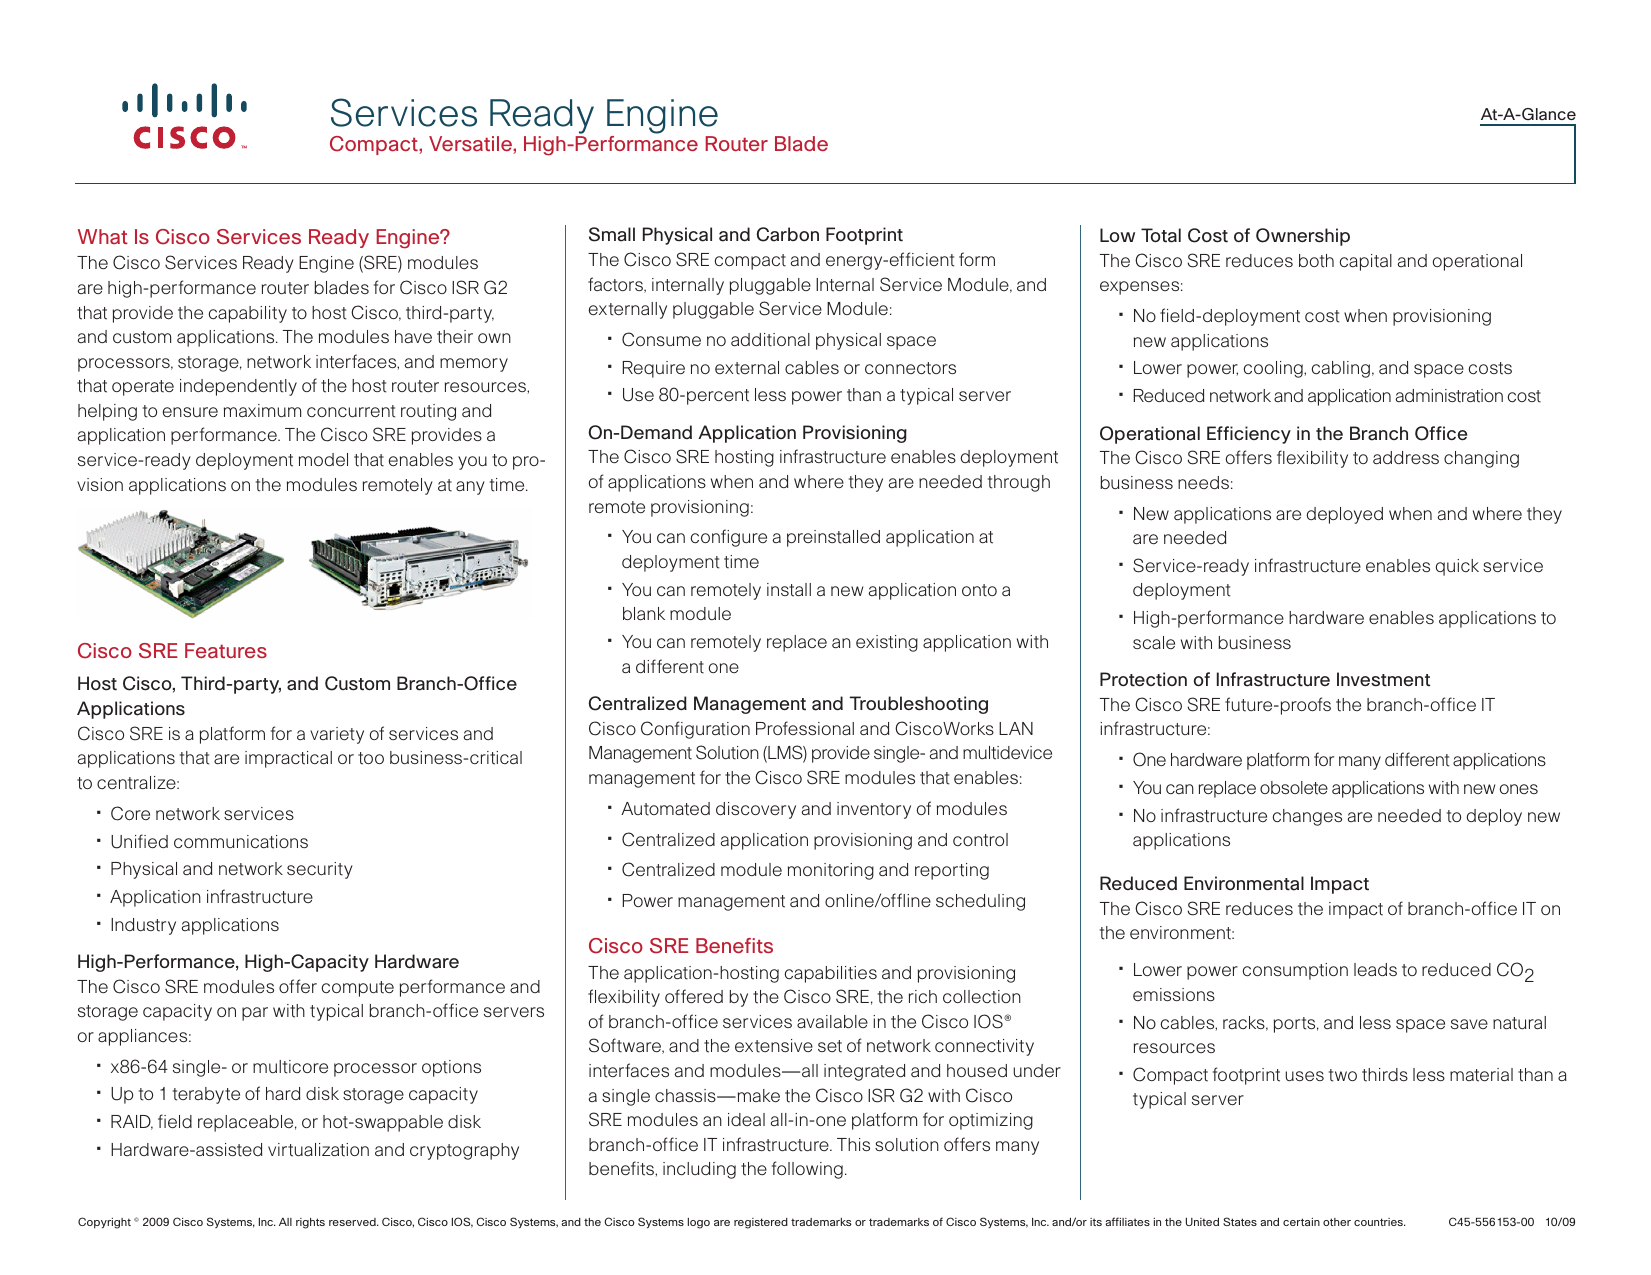 What Is Cisco Services Ready Engine?